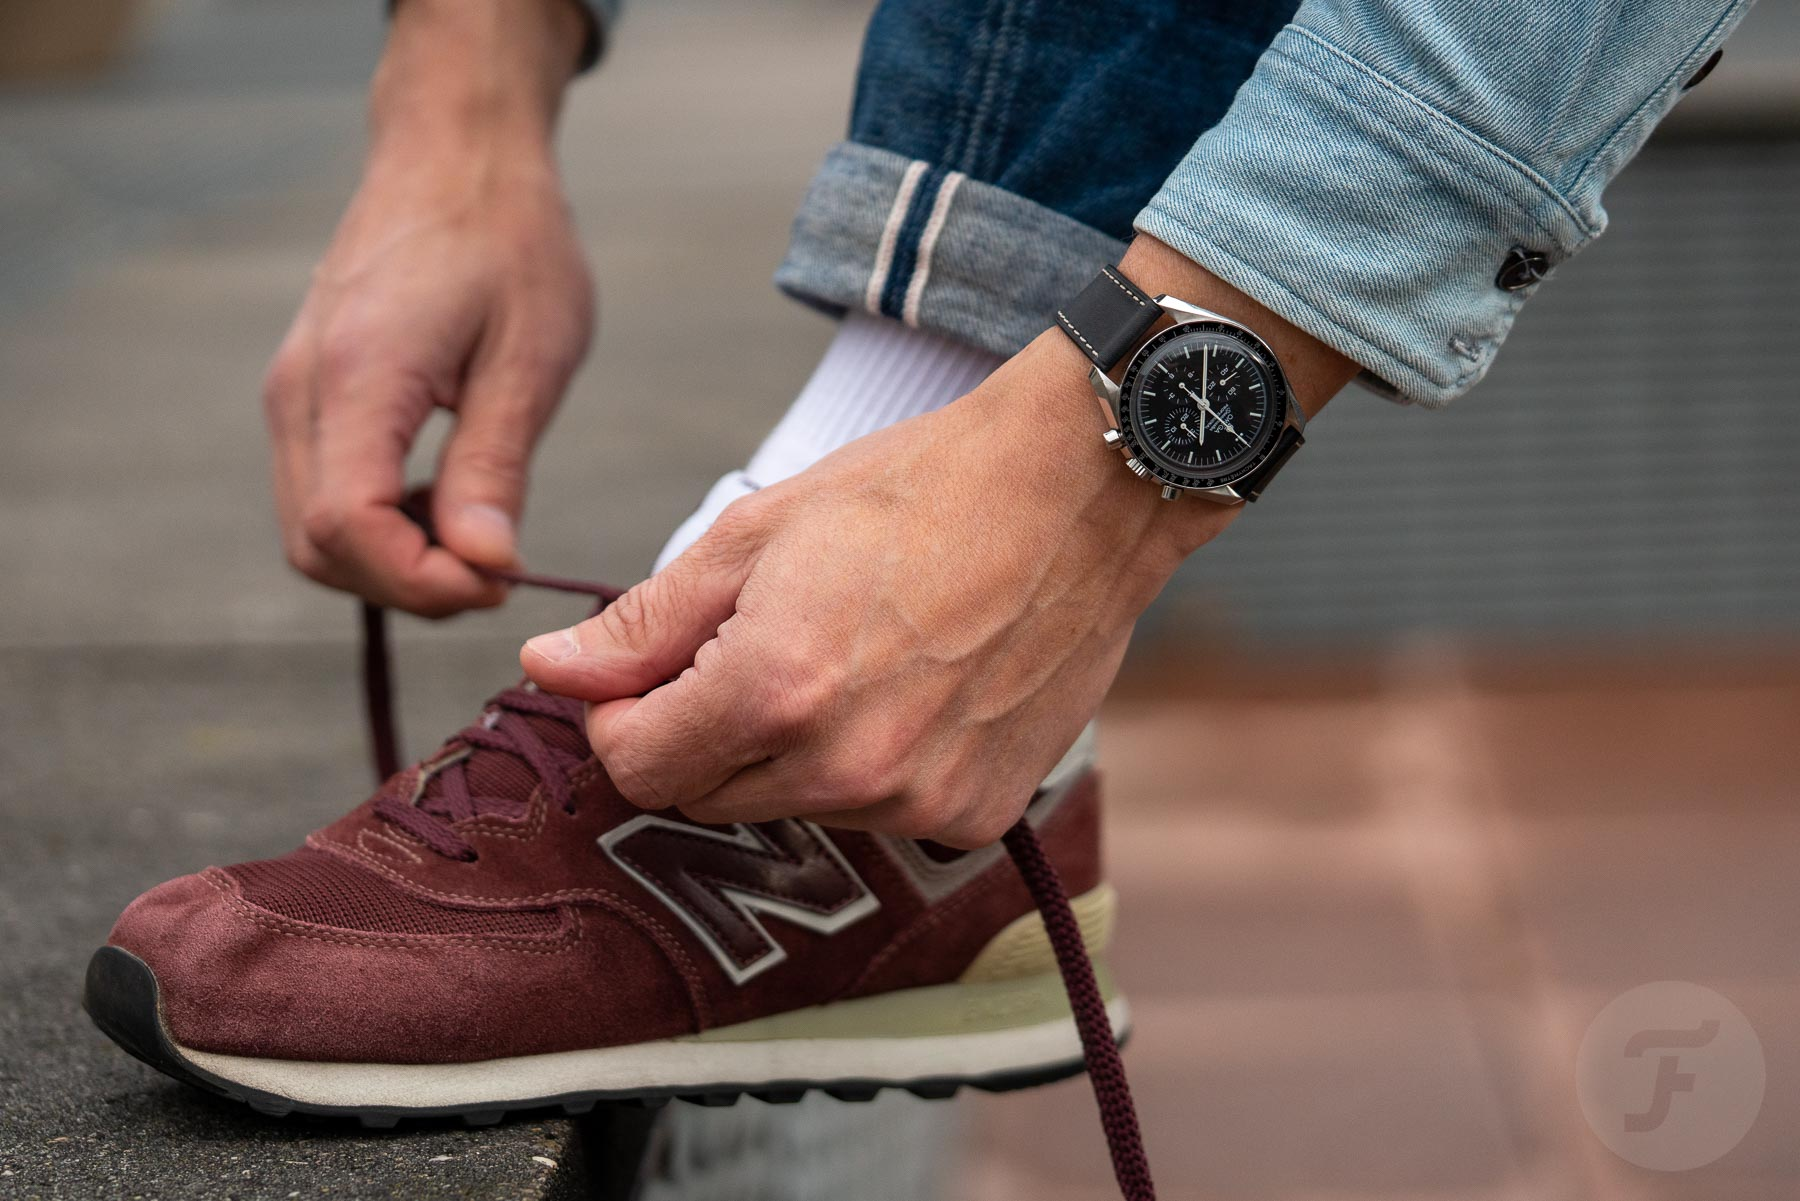 【F】The 11 Most Iconic Sneakers And The Watches That Go With Them